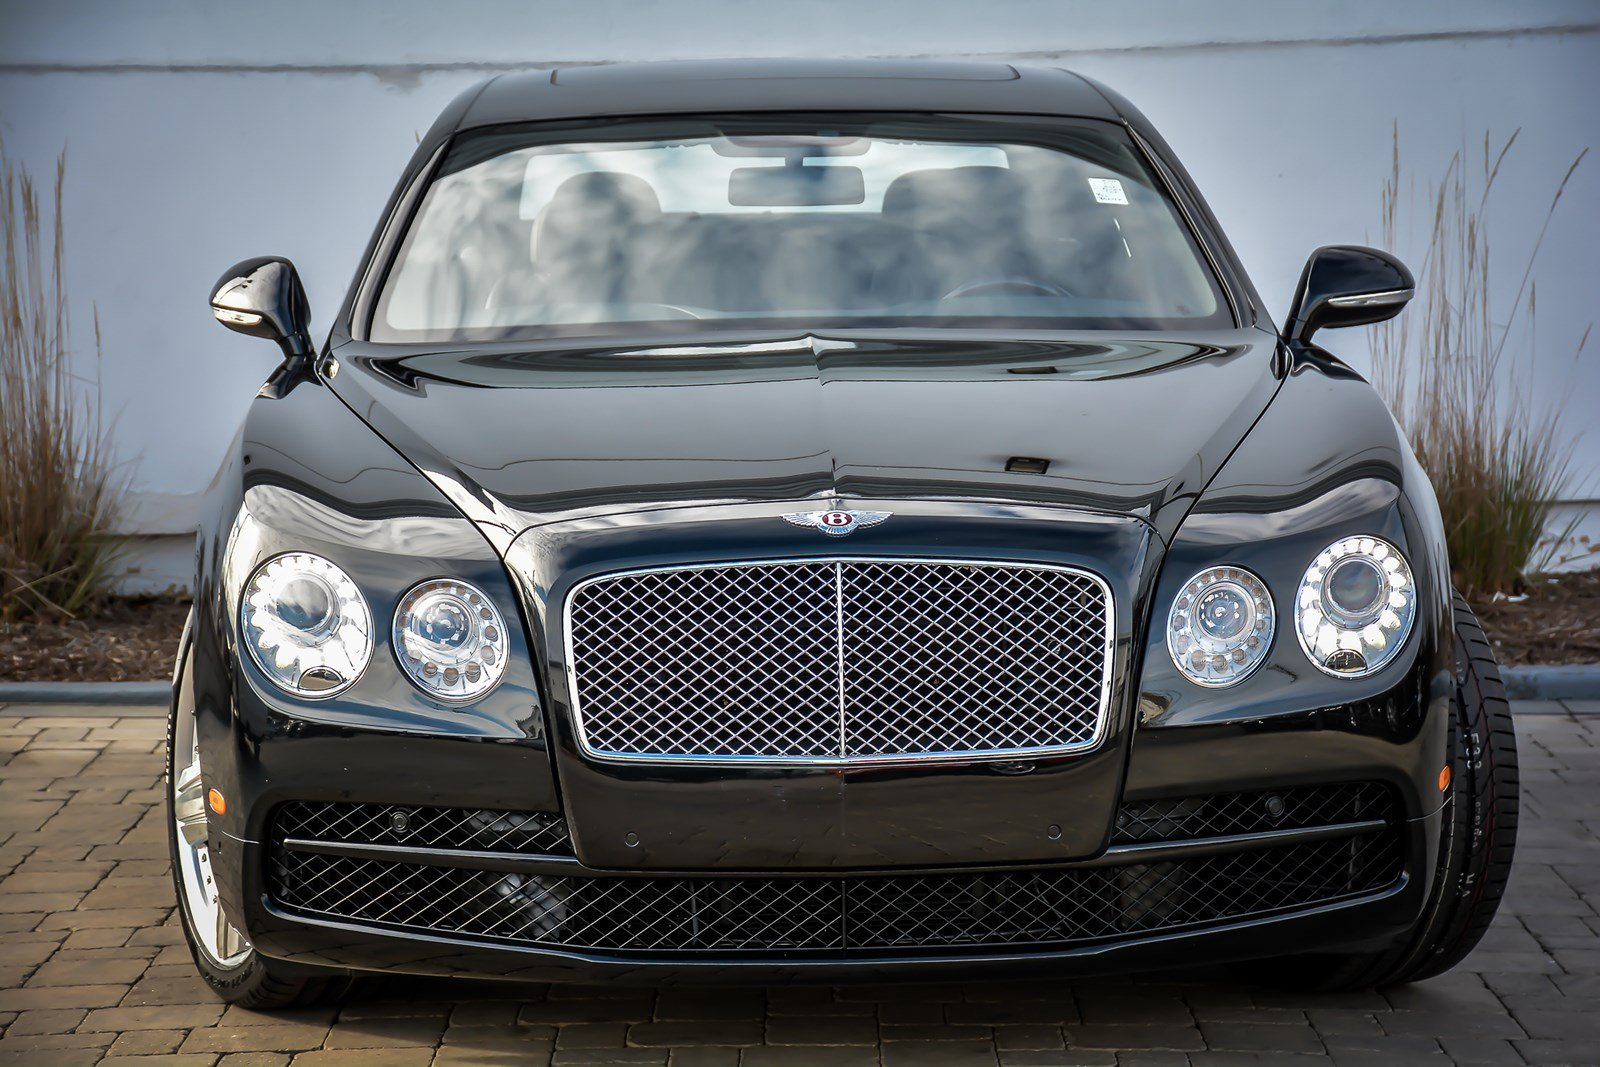 pre used cars for bentley owned uk co motors sale